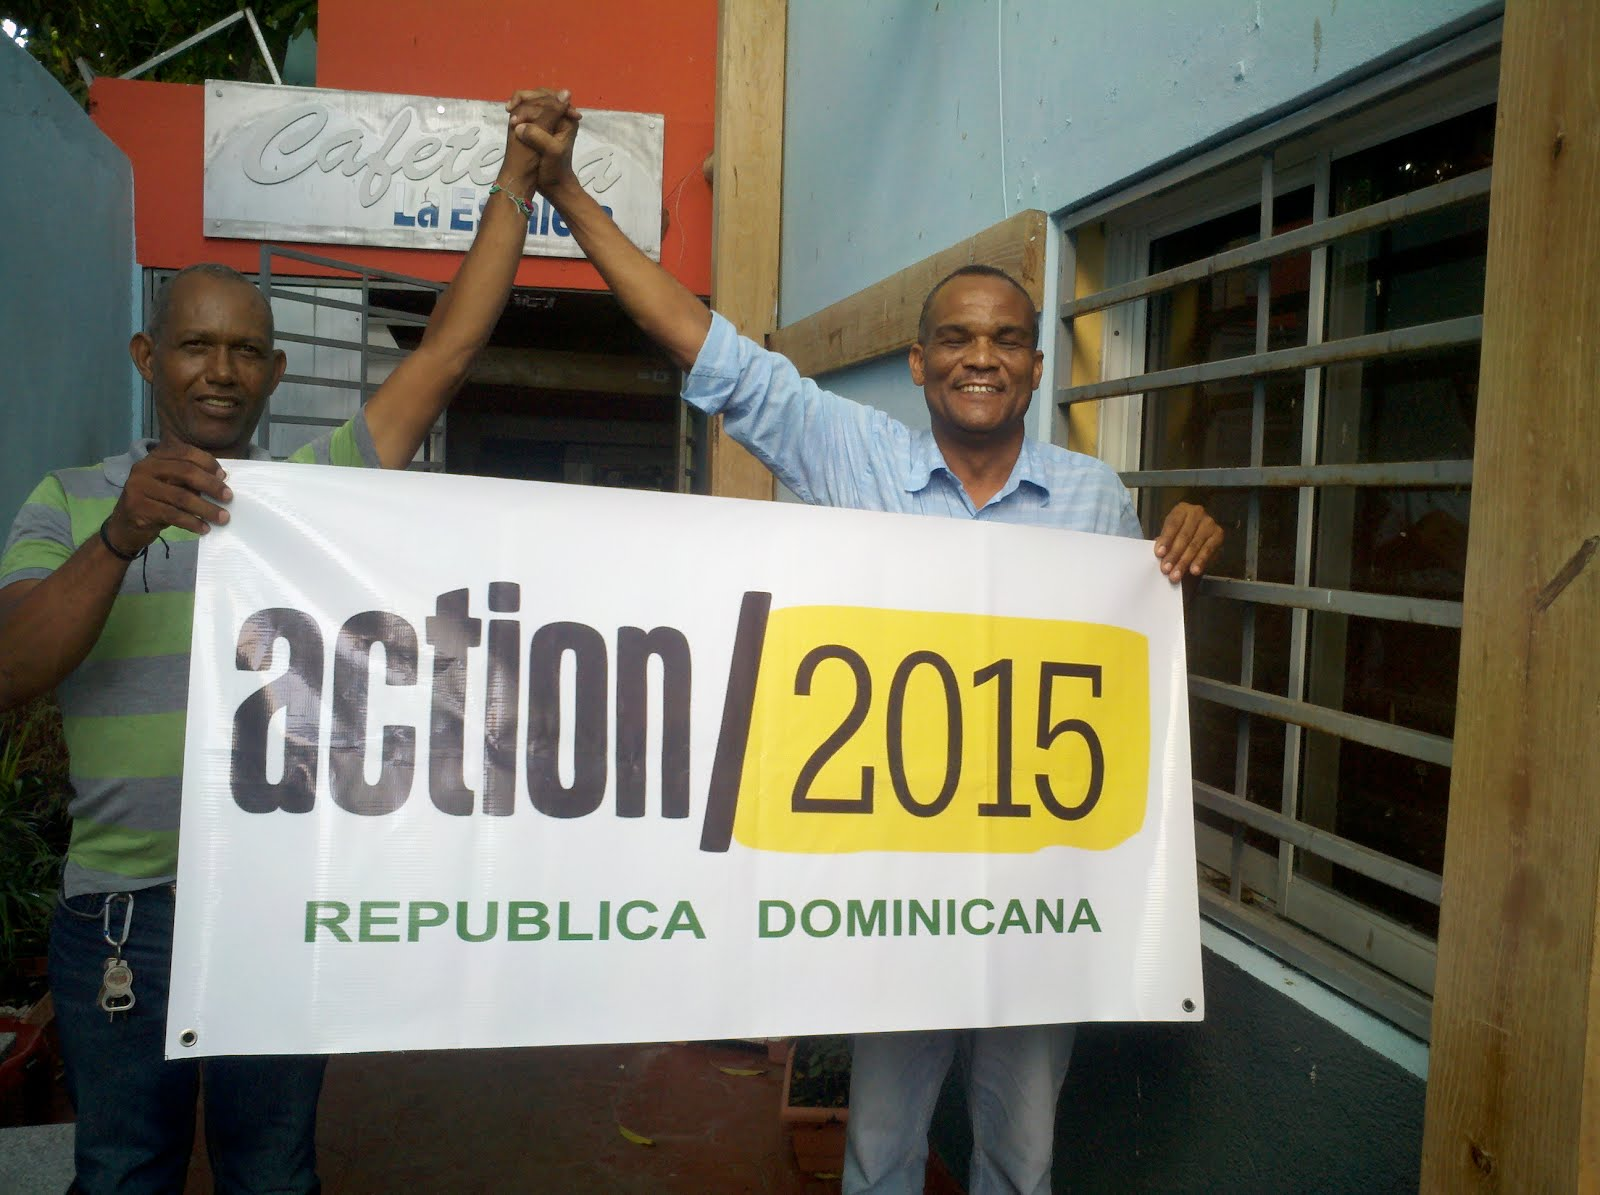 Acción/2015, Rep. Dominicana.